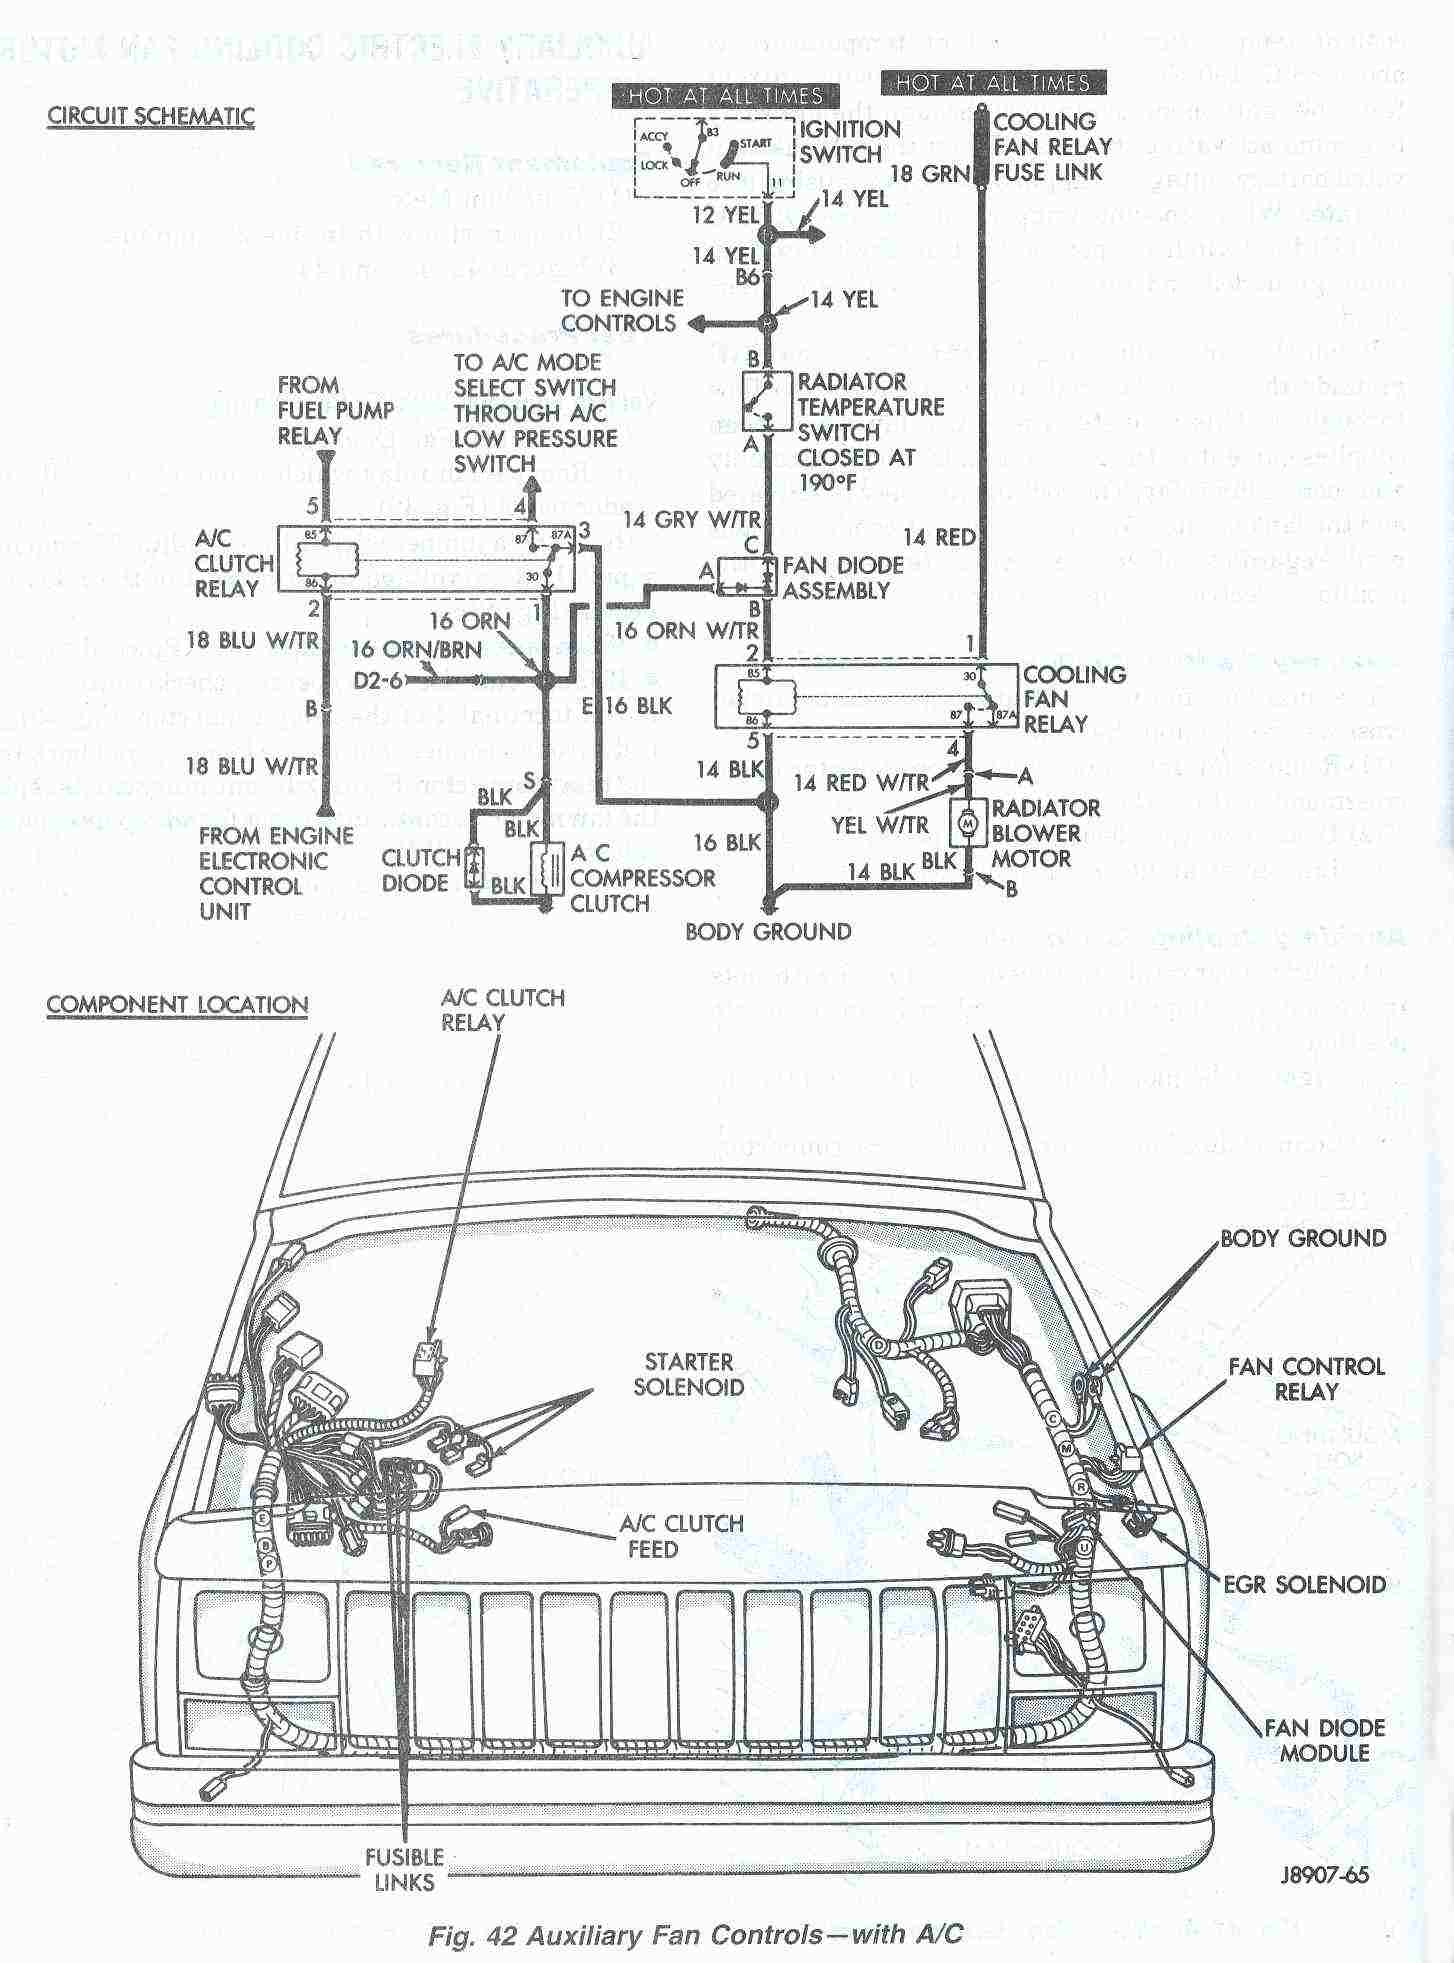 Auxiliary_Fan_Schematic_Fig_42 jeep comanche wiring diagram jeep electrical wiring schematic 1998 jeep grand cherokee ignition wiring diagram at gsmx.co